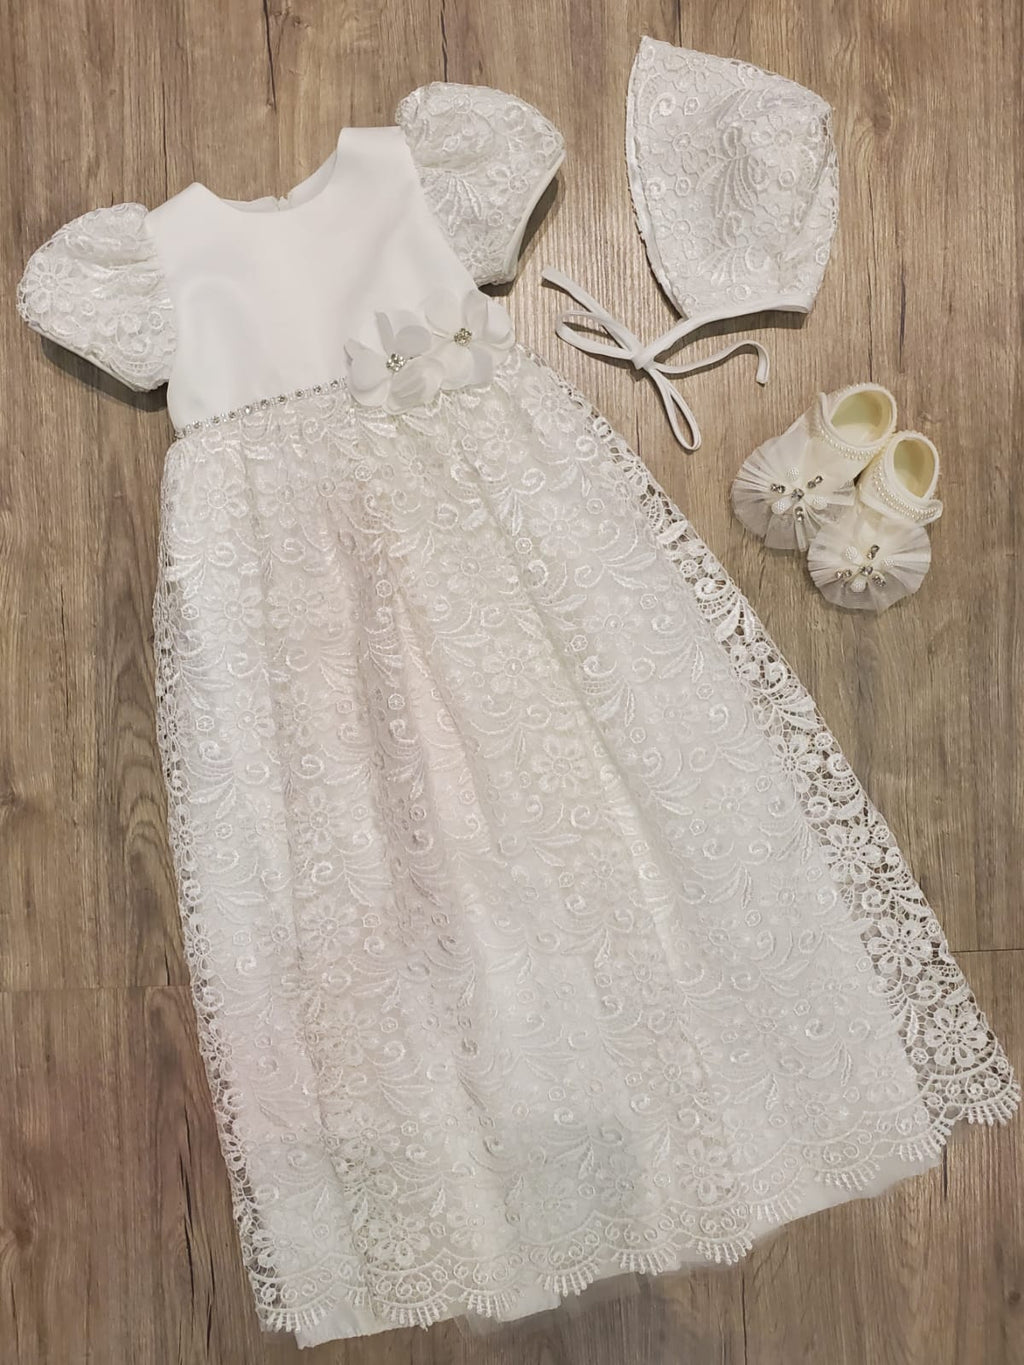 Theresa's Baptism Dress